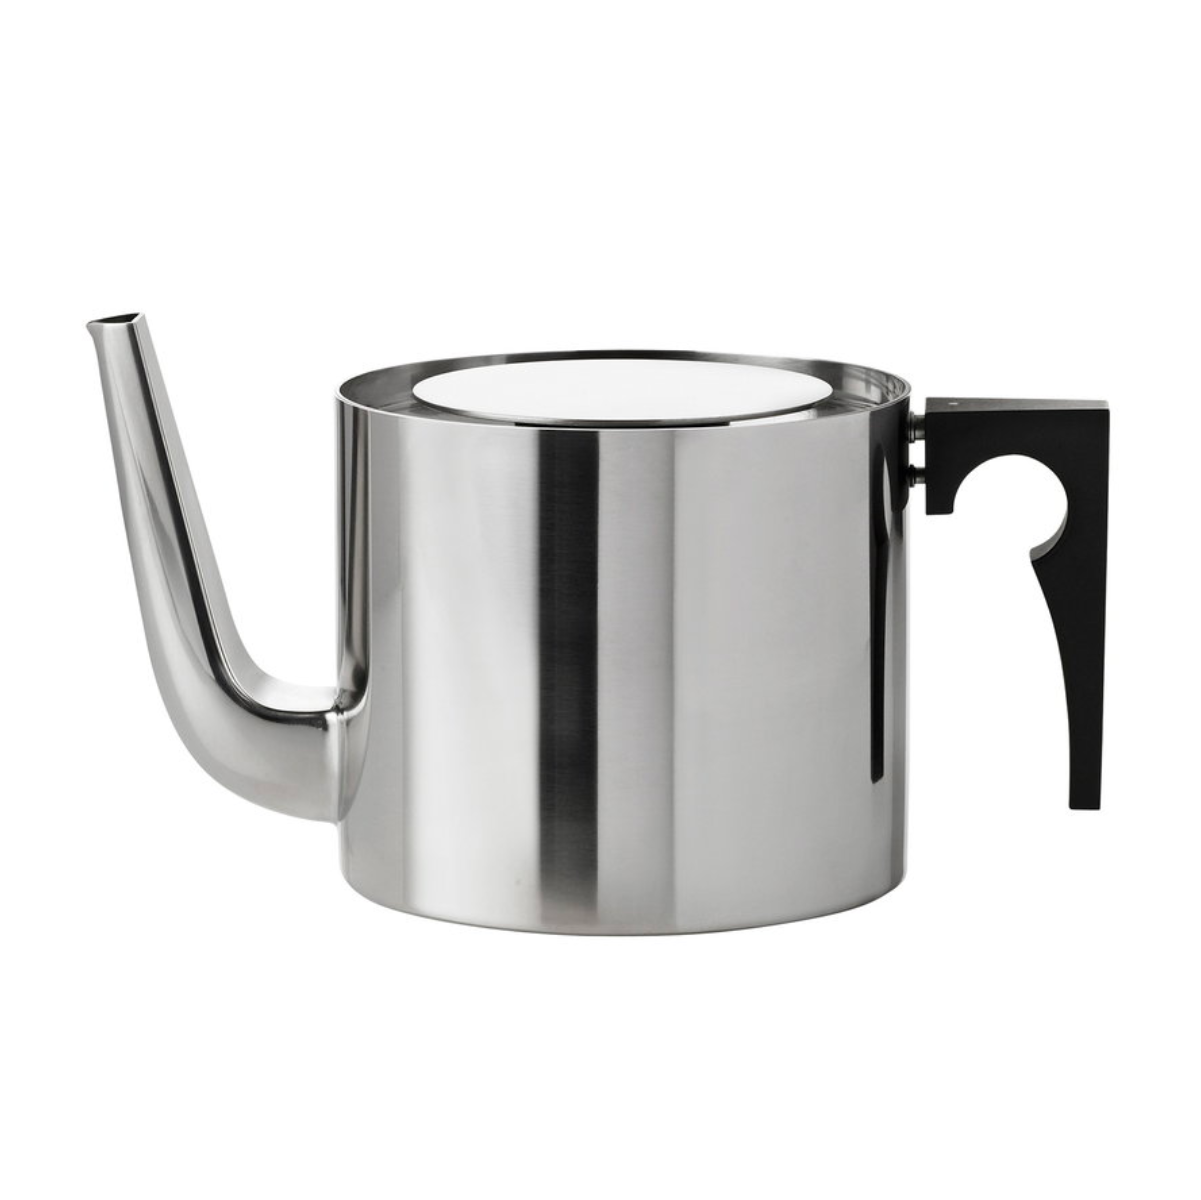 Stelton Arne Jacobsen tea pot 1.25L